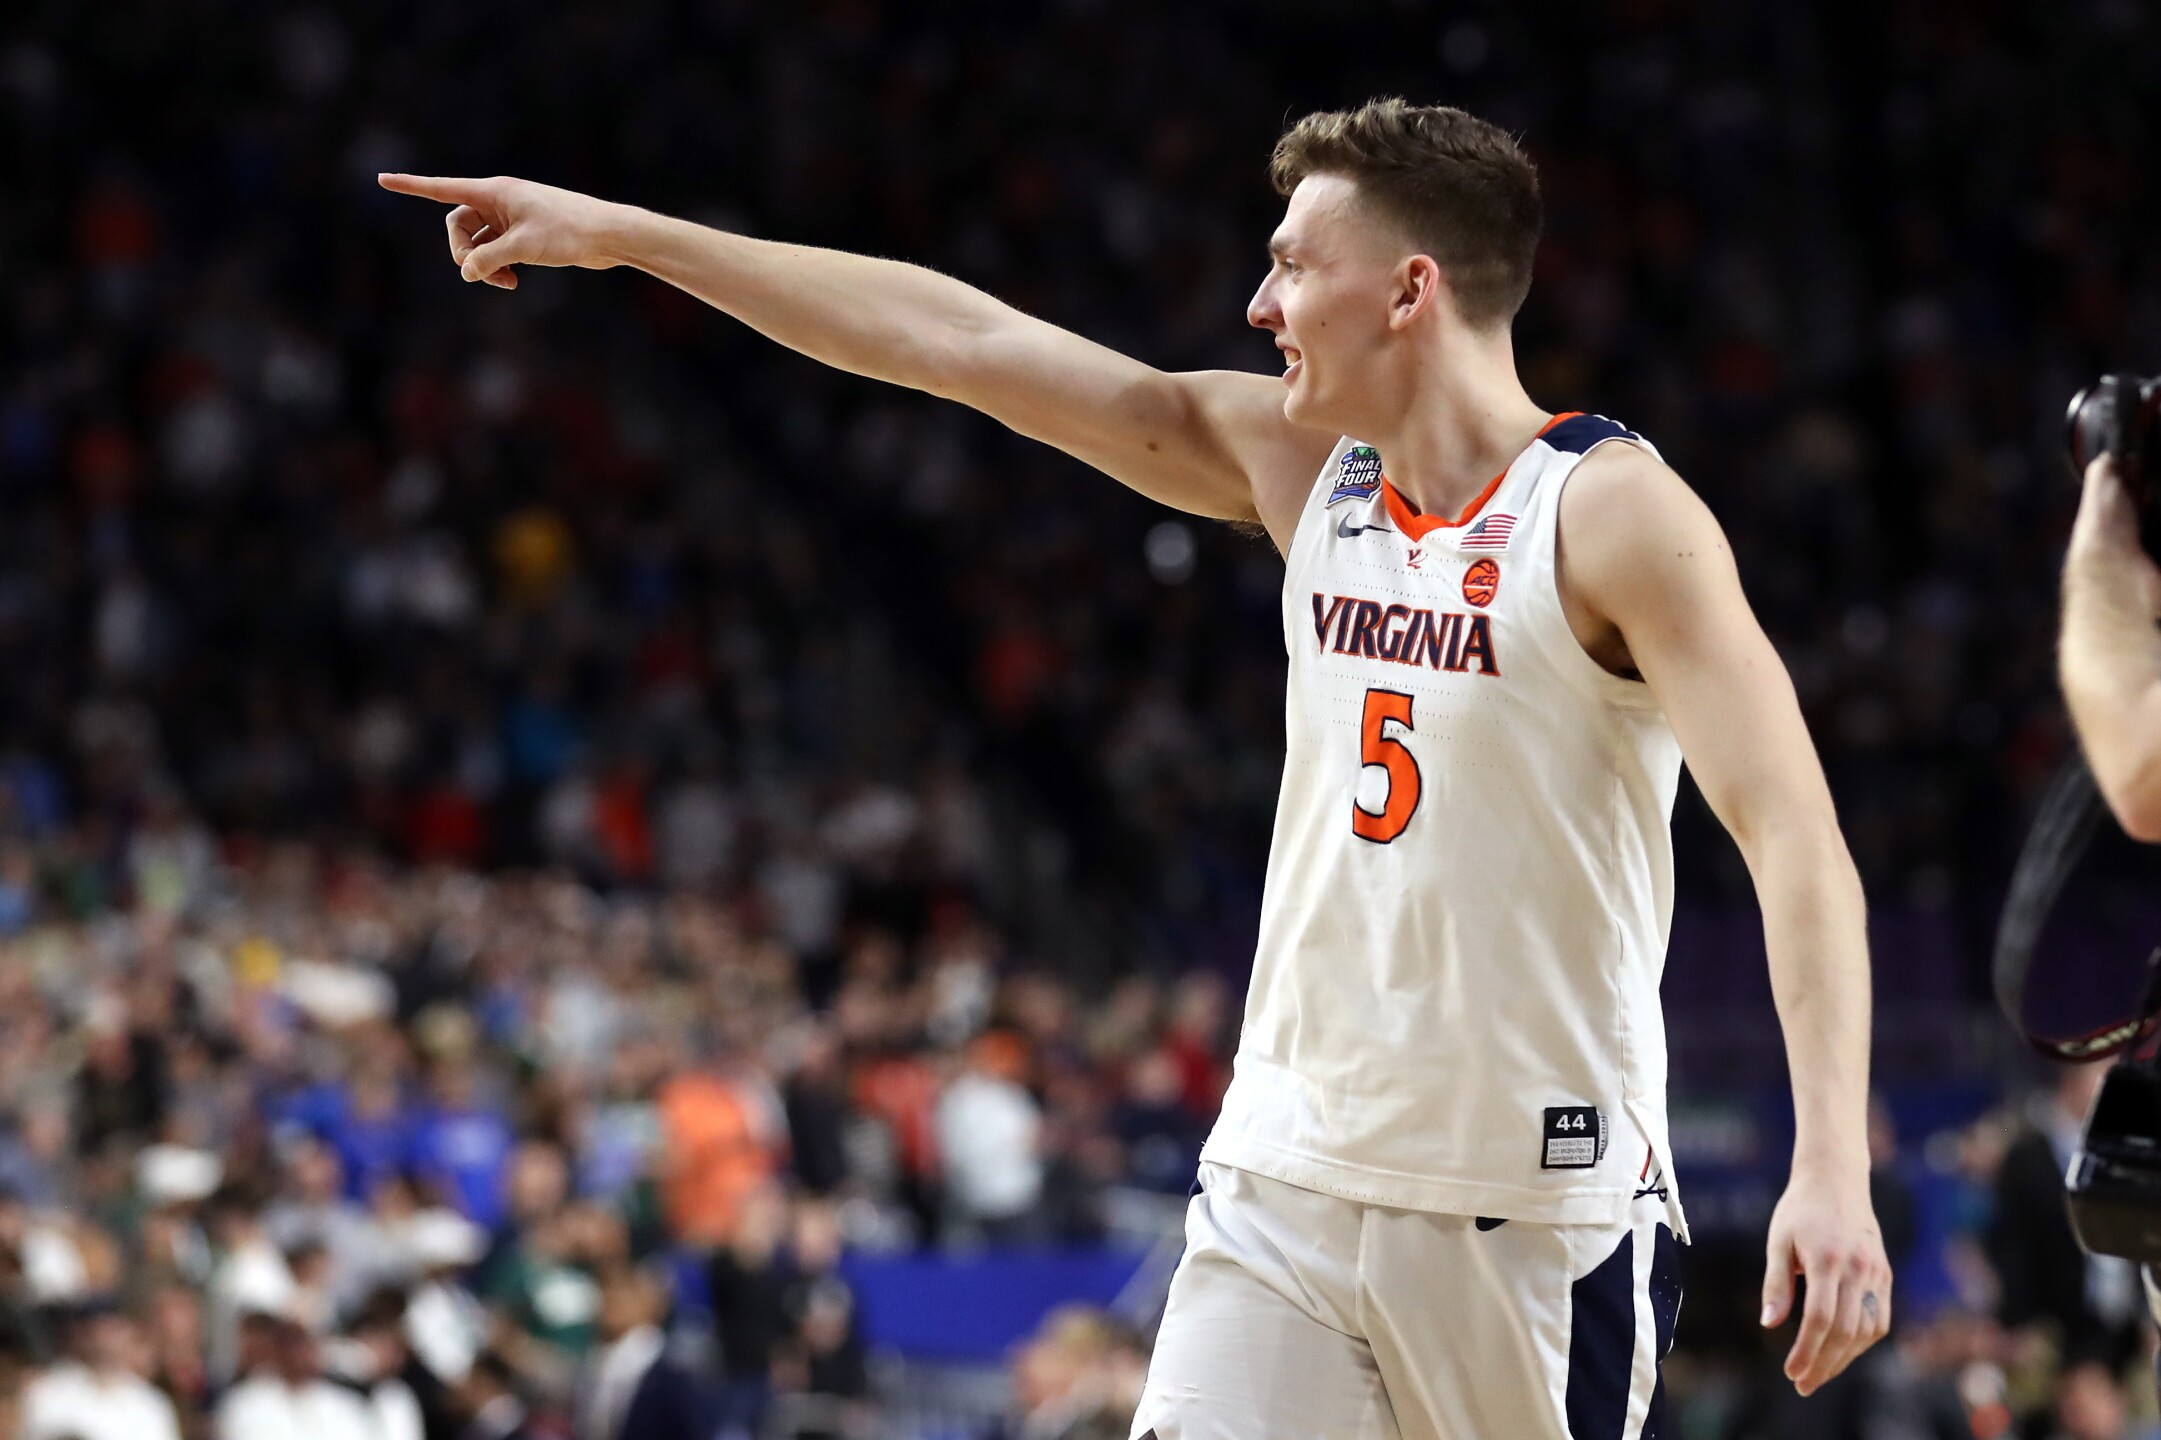 Photos: Cardiac Cavaliers: Kyle Guy's free throws send Virginia to first national title game